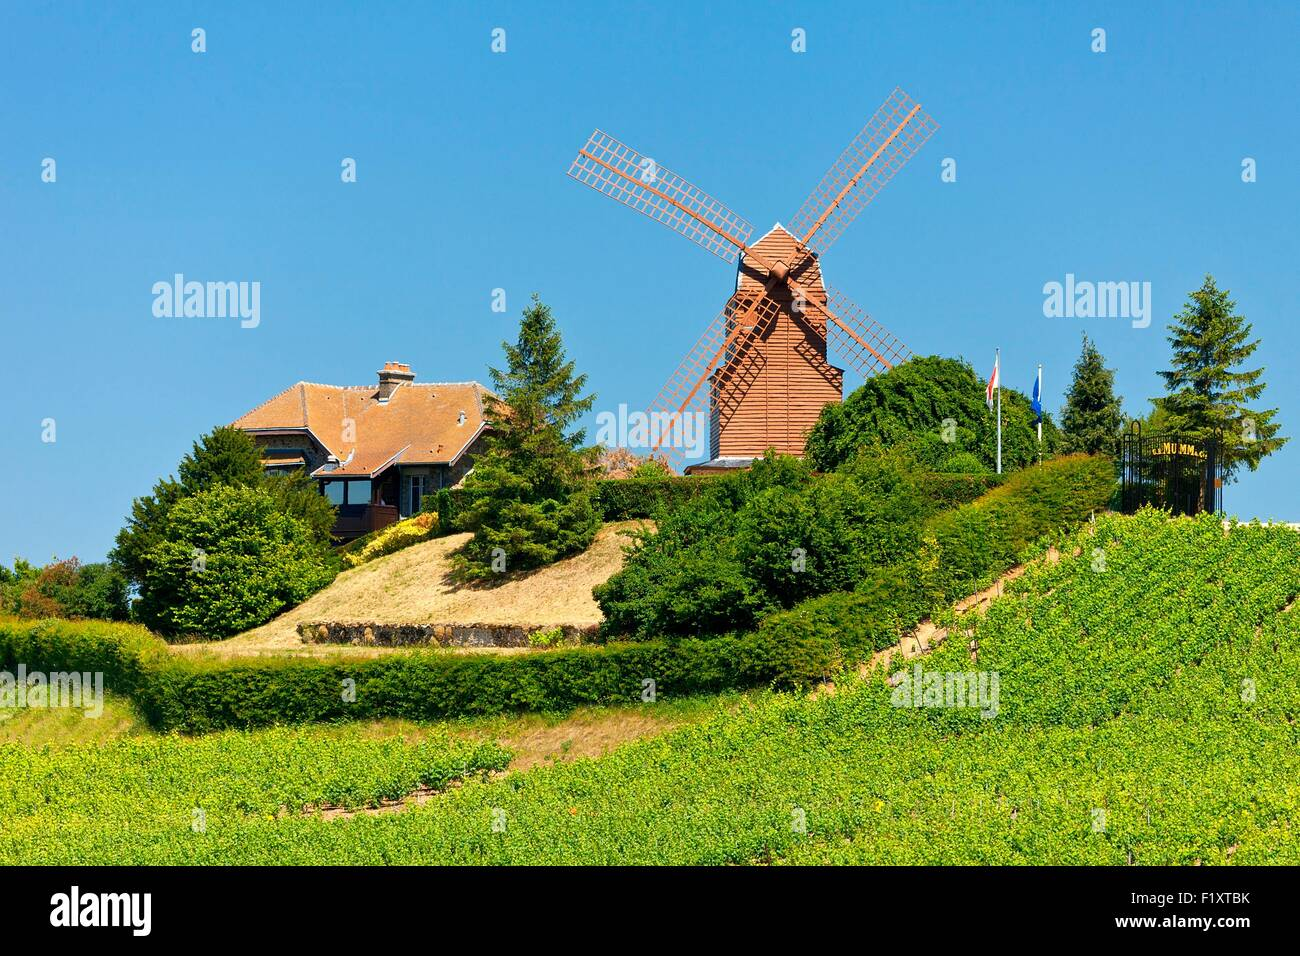 France, Marne, regional park of Montagne de Reims, windmill of Verzenay - Stock Image